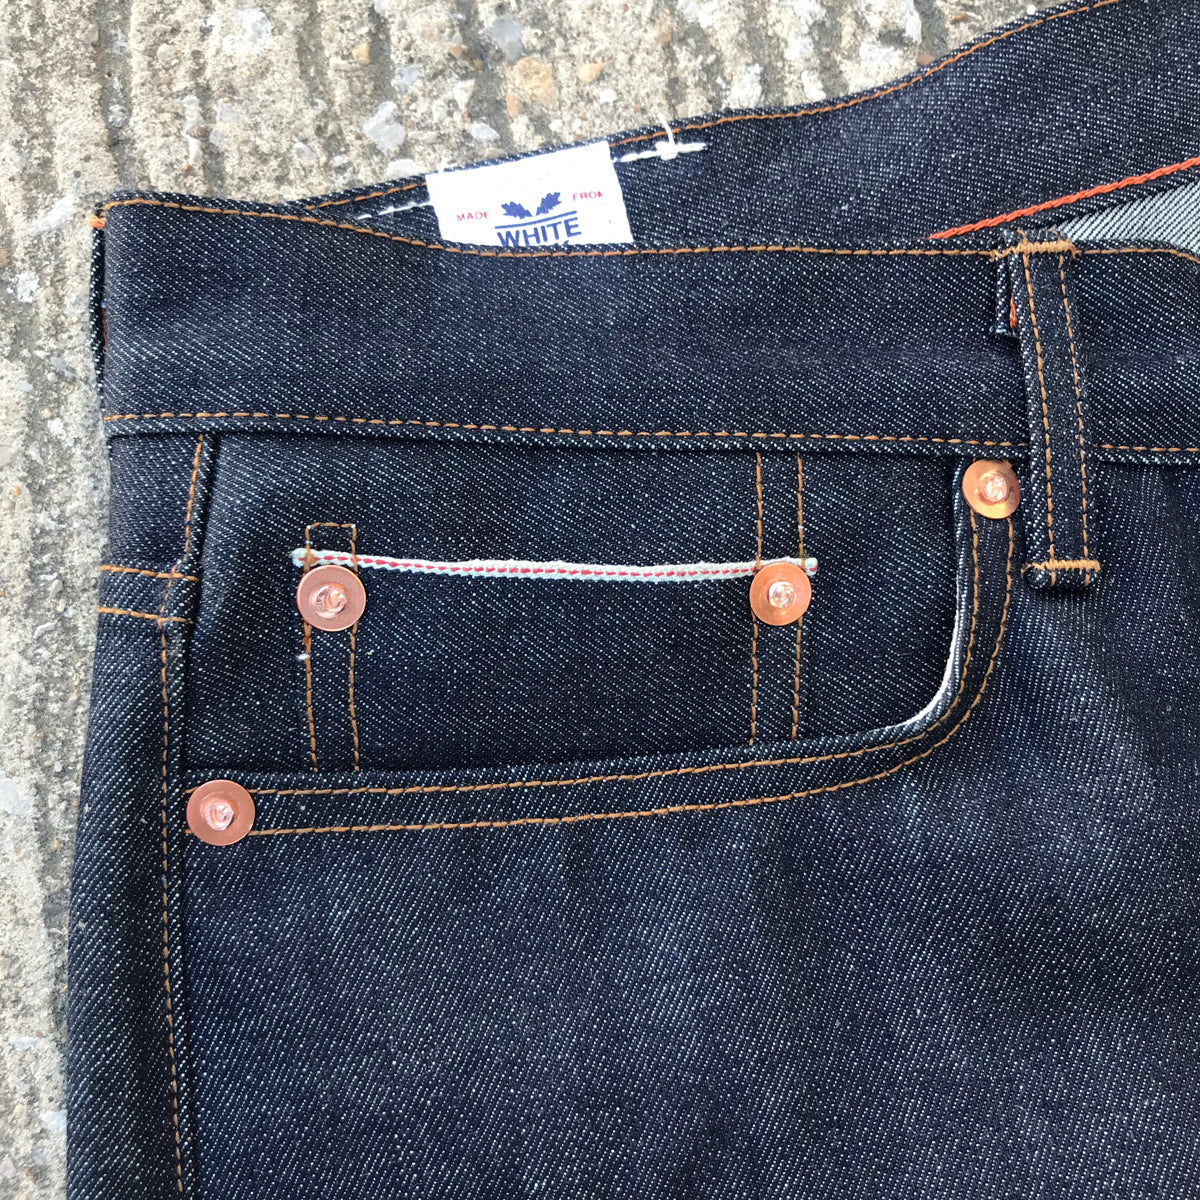 """IN STOCK NOW"" 13.5oz Indigo Cone Mills [ 901 Slim fit ONLY ]"